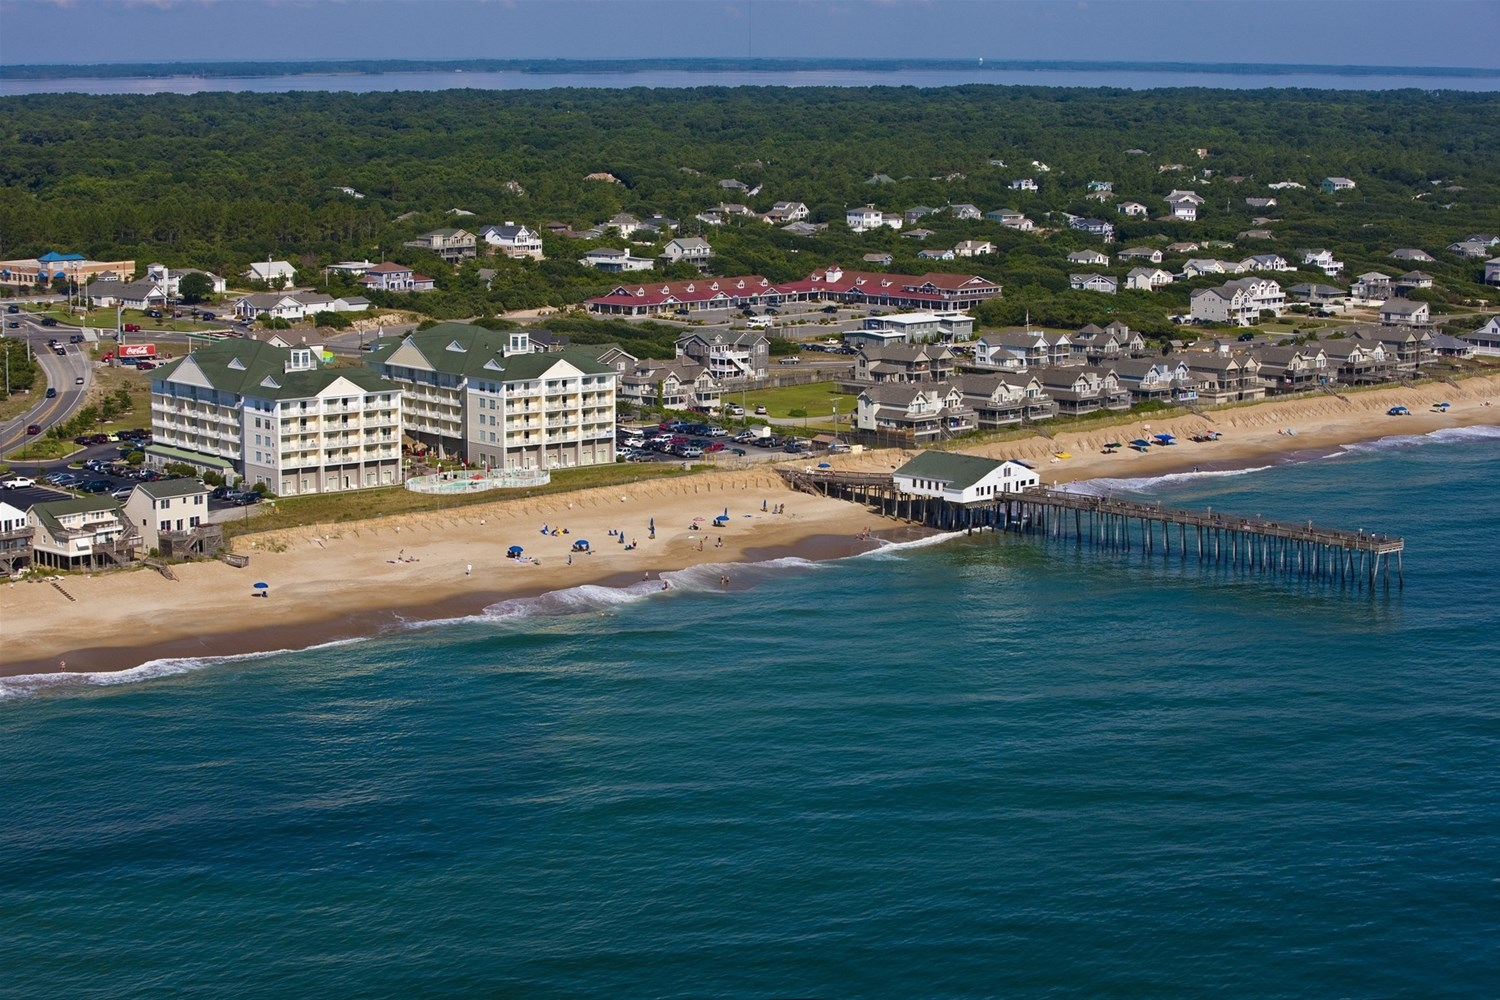 Hilton Garden Inn Outer Banks The Carolinas The South Trailfinders The Travel Experts